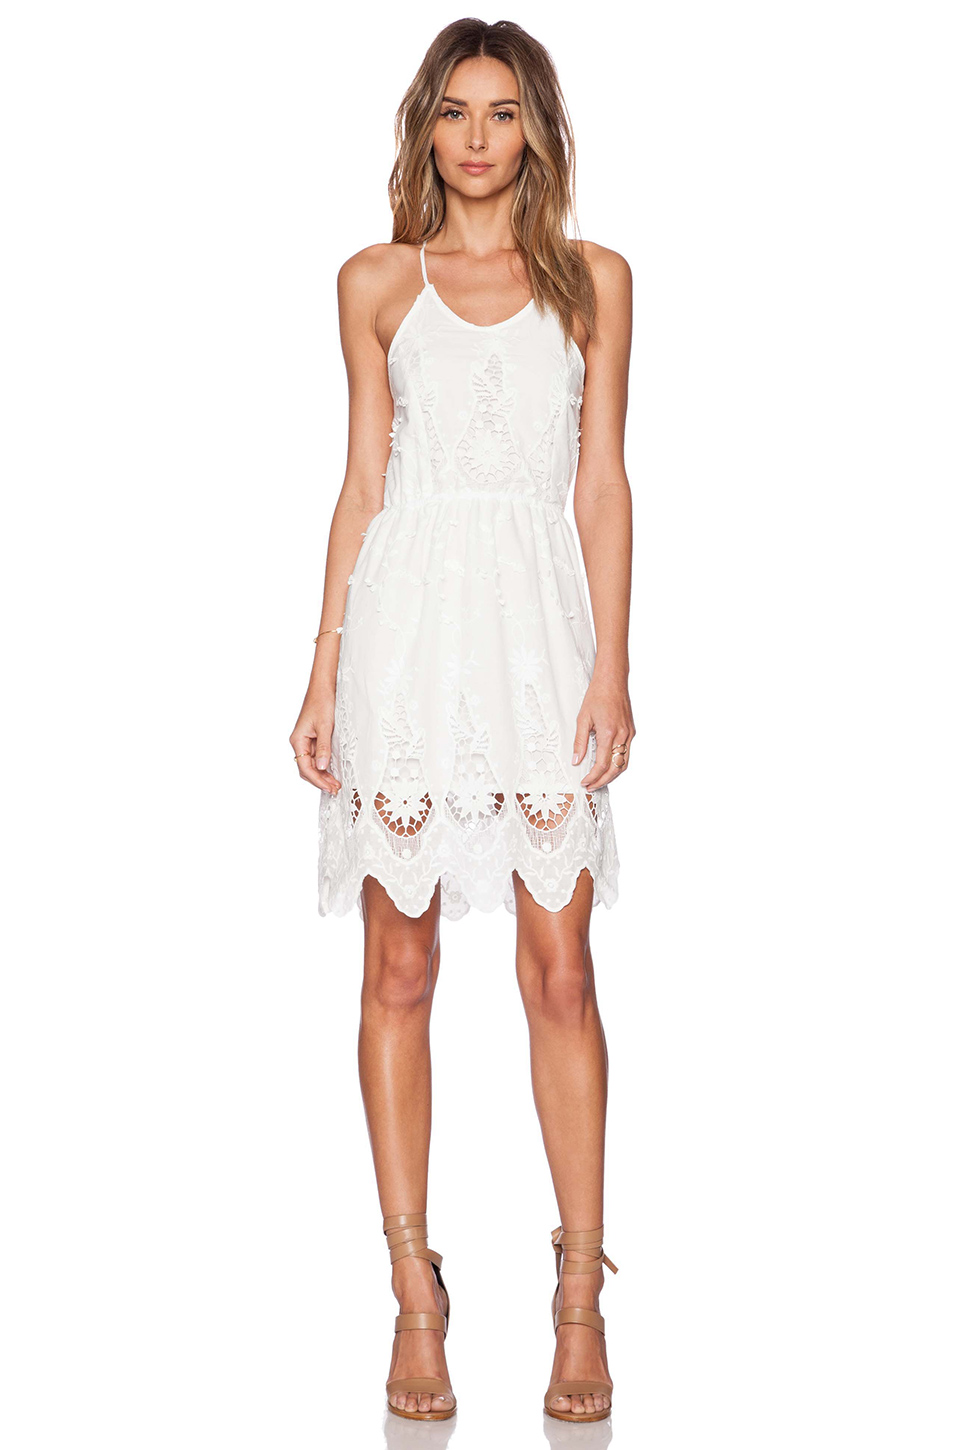 SWEET NOTHING MINI DRESS